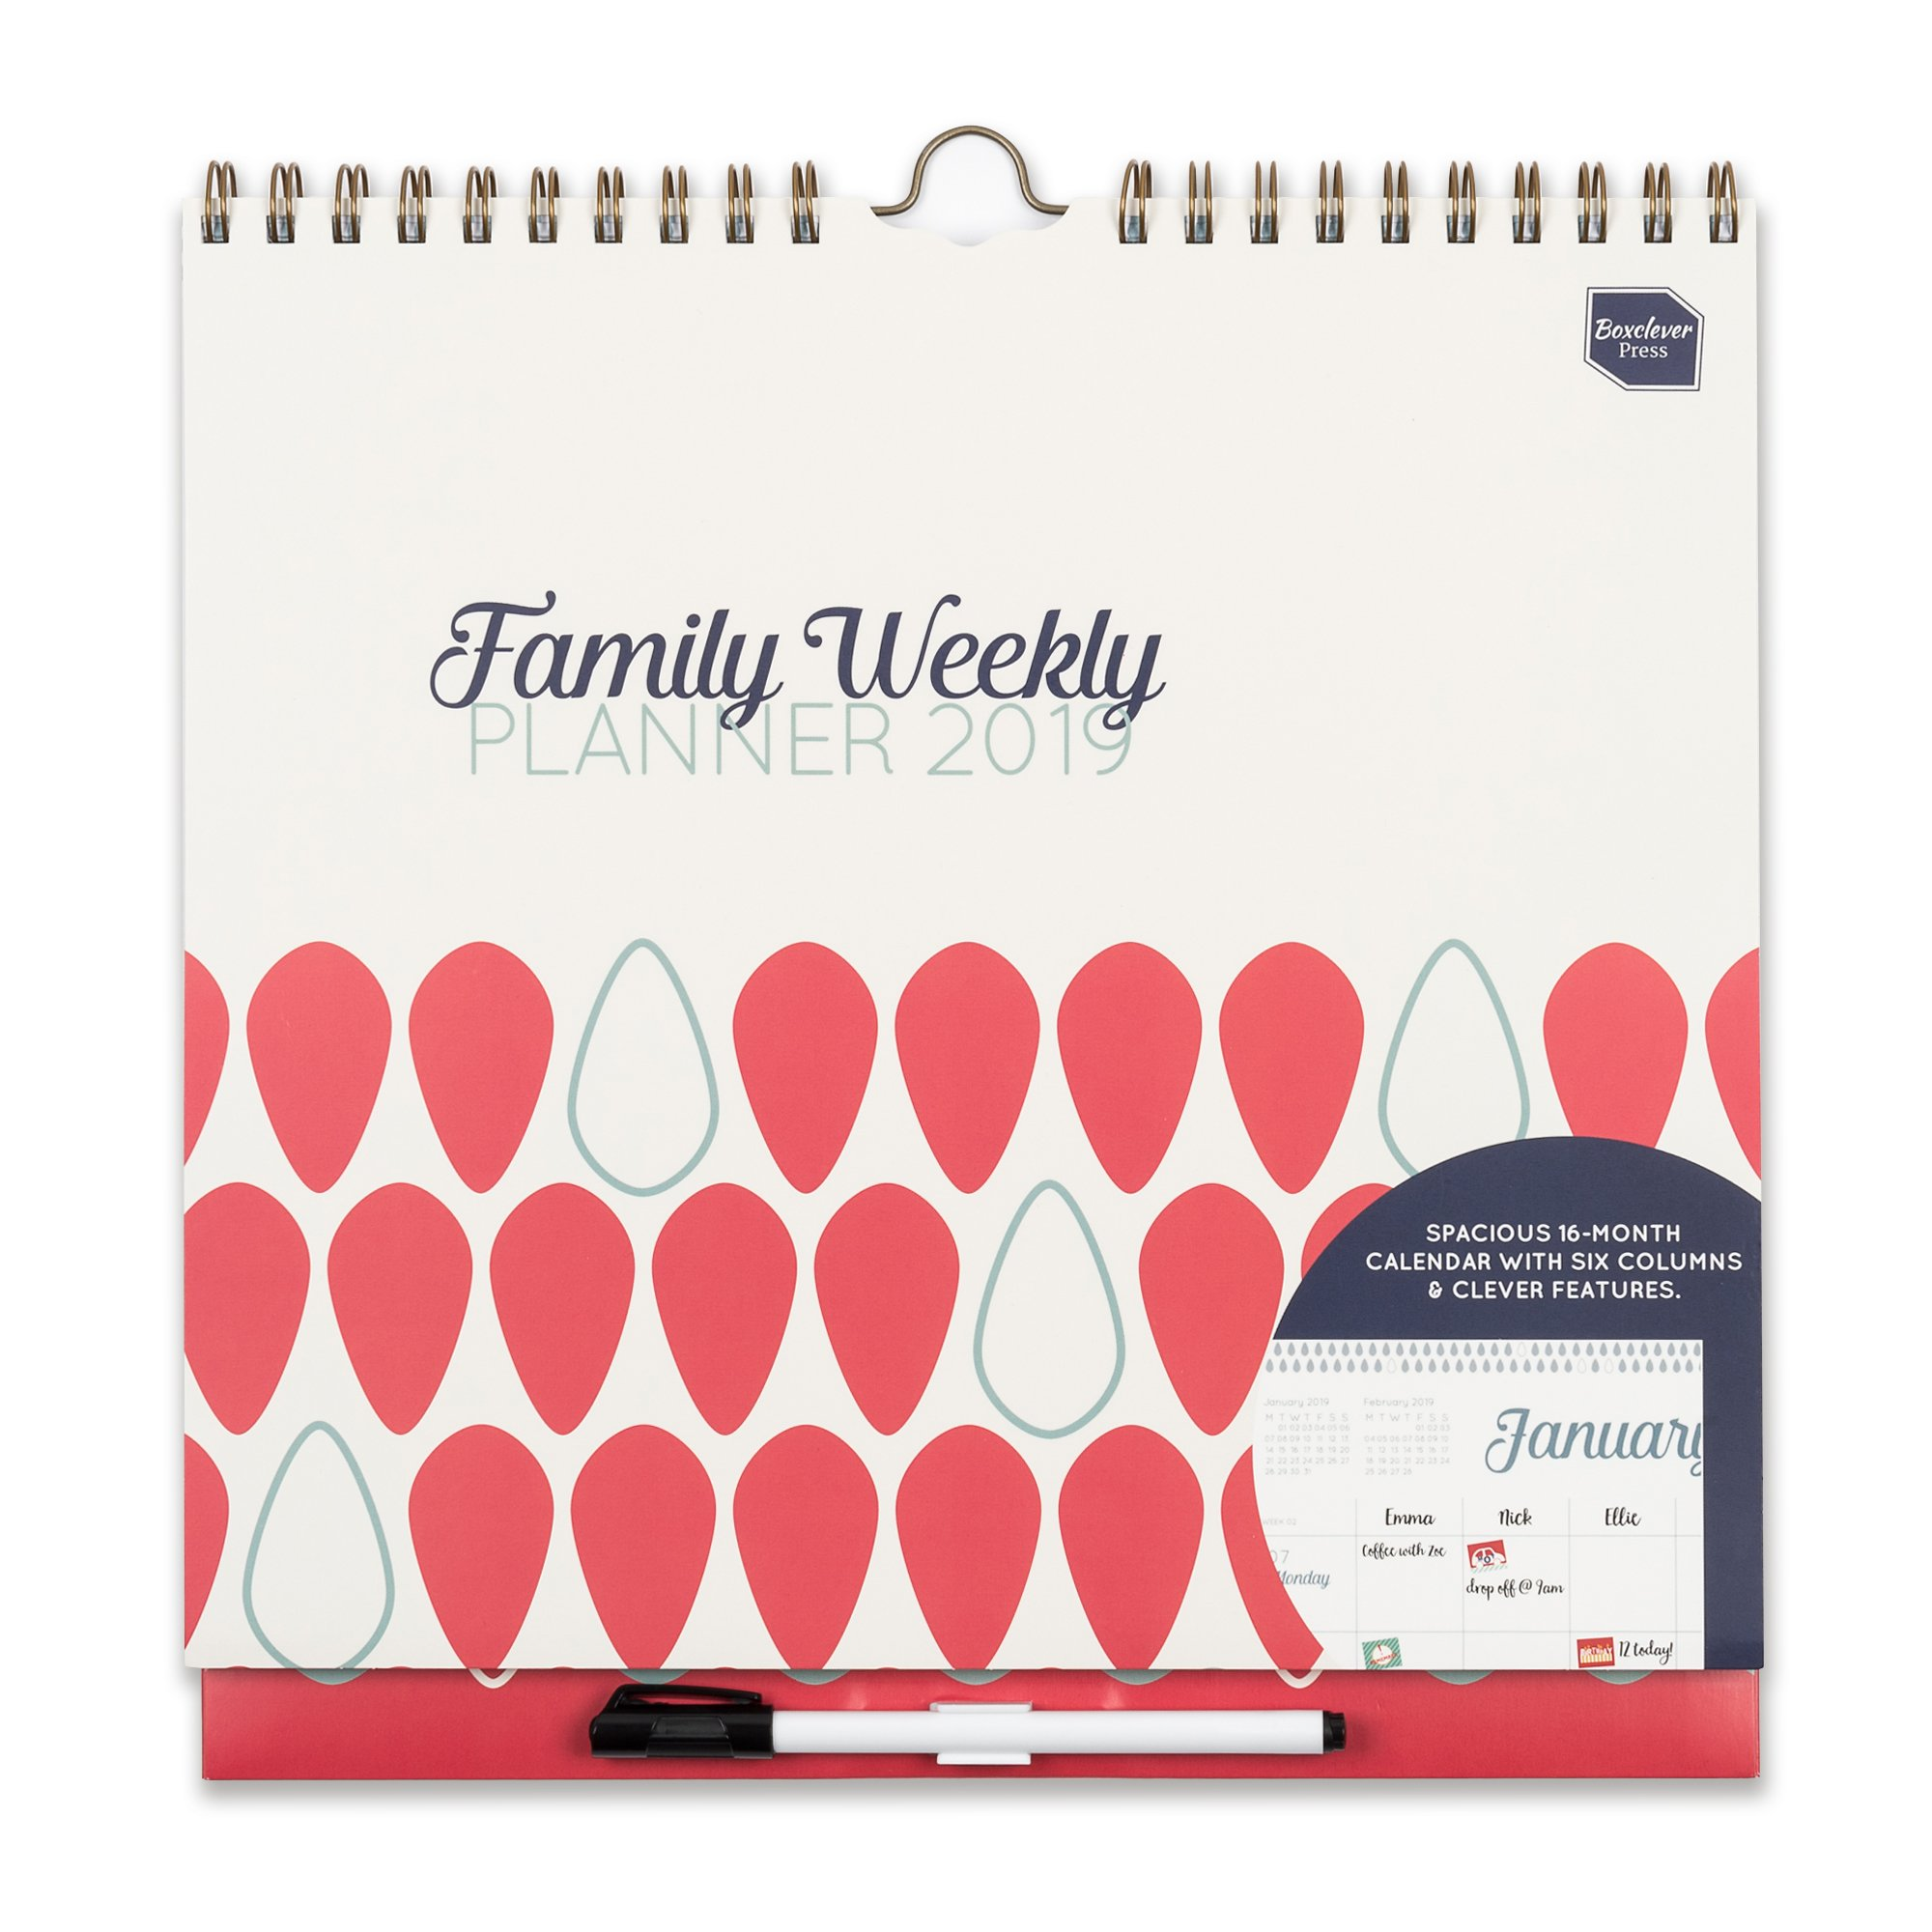 Boxclever Press Family Weekly Planner Calendar. 2018 2019 School Calendar. Academic Wall Calendar. 288 Stickers Columns/Grid Layout for up to 6 People. Tear Off Shopping Lists. Formerly Organized Mom